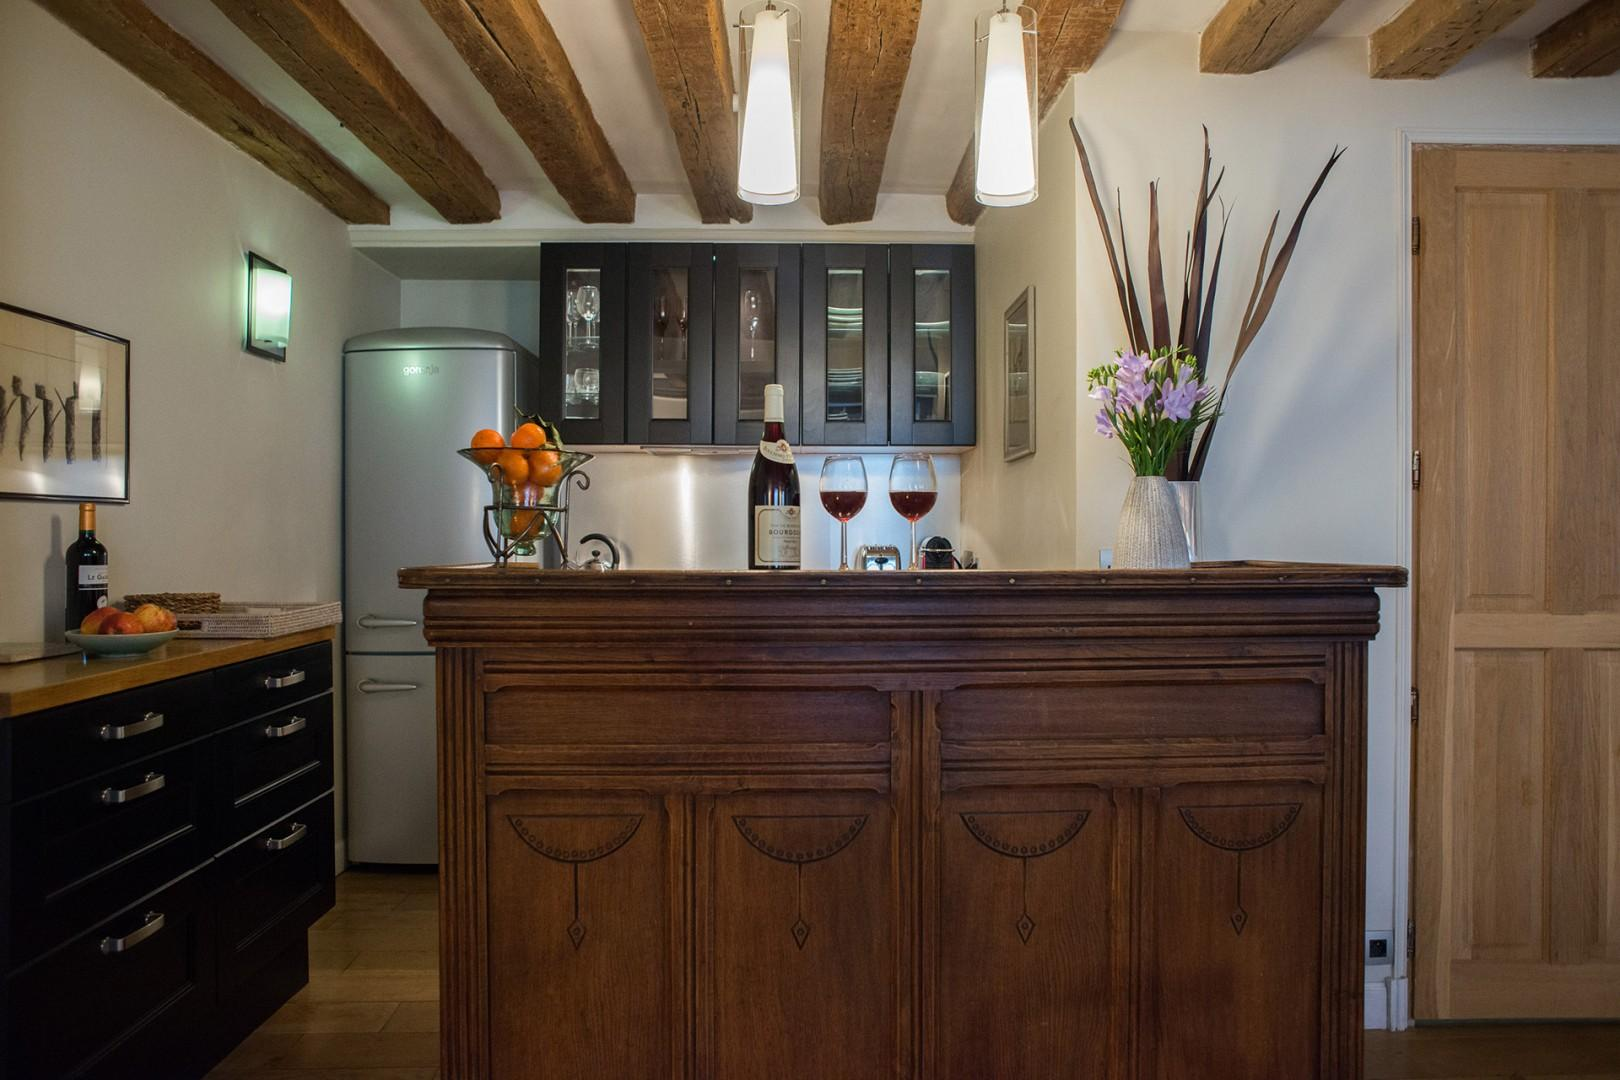 The kitchen also includes a classic bar area, perfect for apero hour.